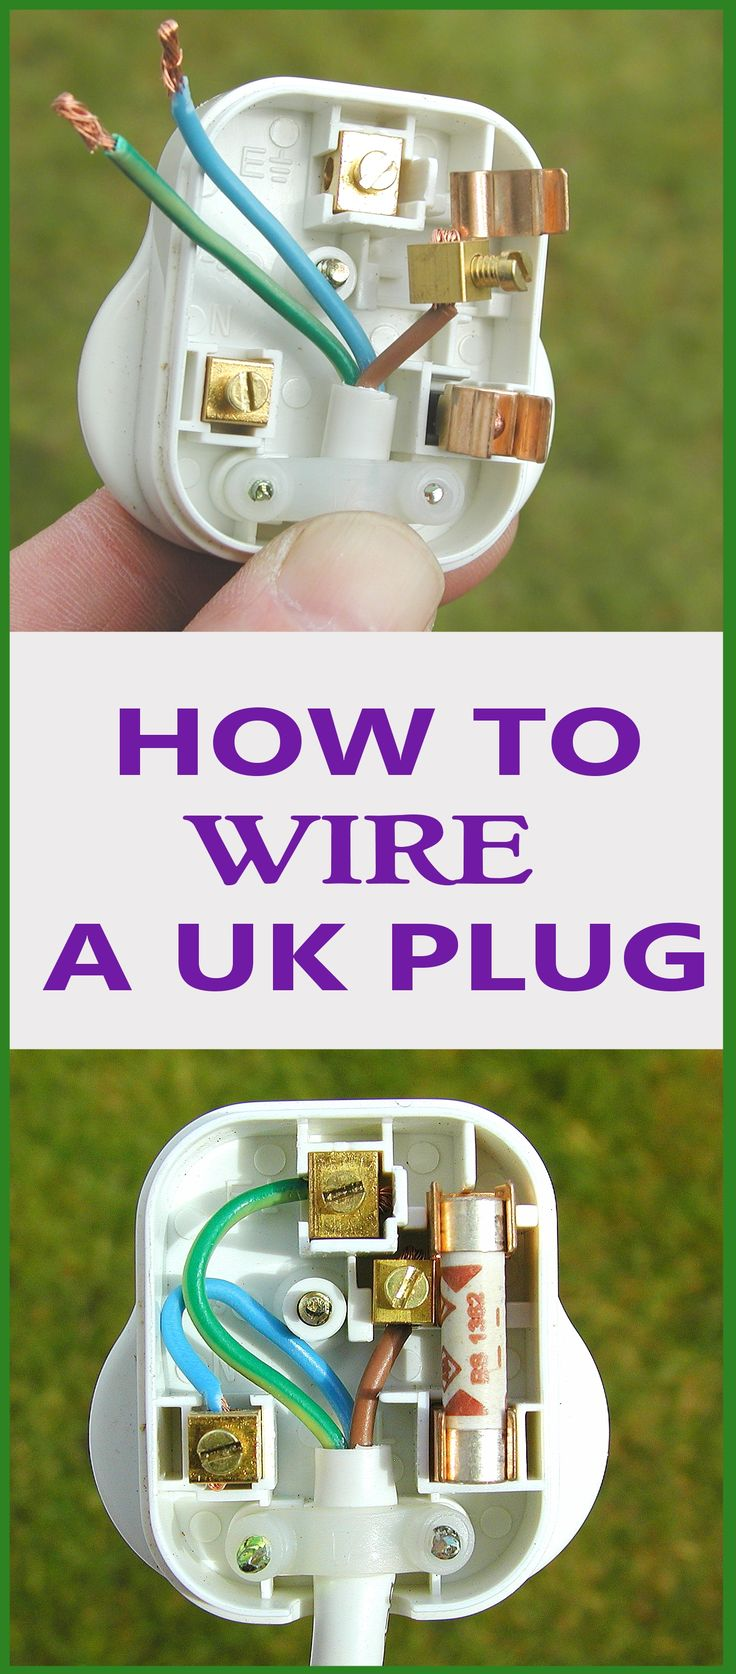 9 Easy steps to wiring a plug correctly and safely  #appliances #ElectricalAppliances #wiring #gadgets #PowerTools